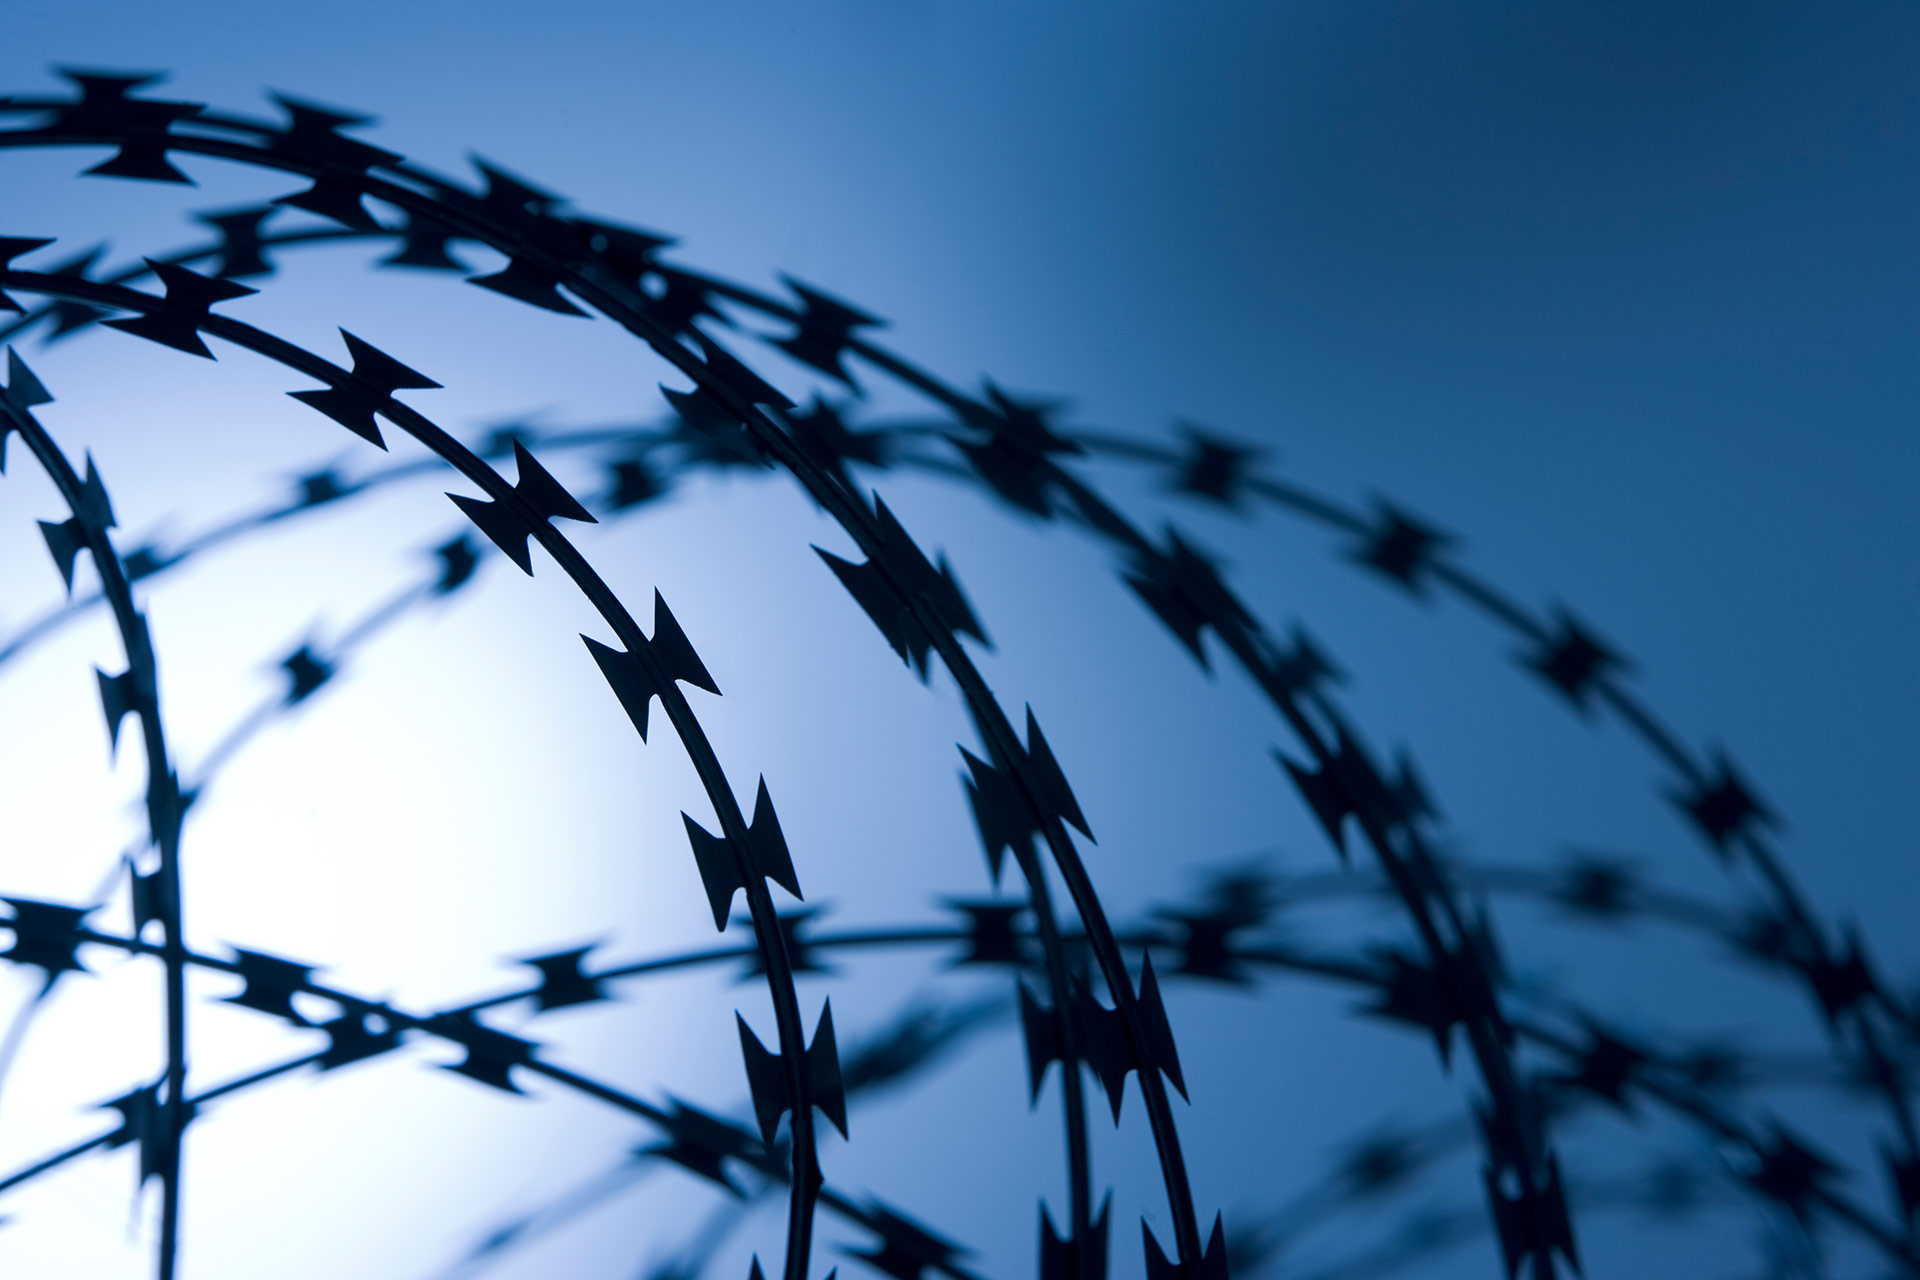 Razor Spike, Razor Wire, Perimeter Security Solutions